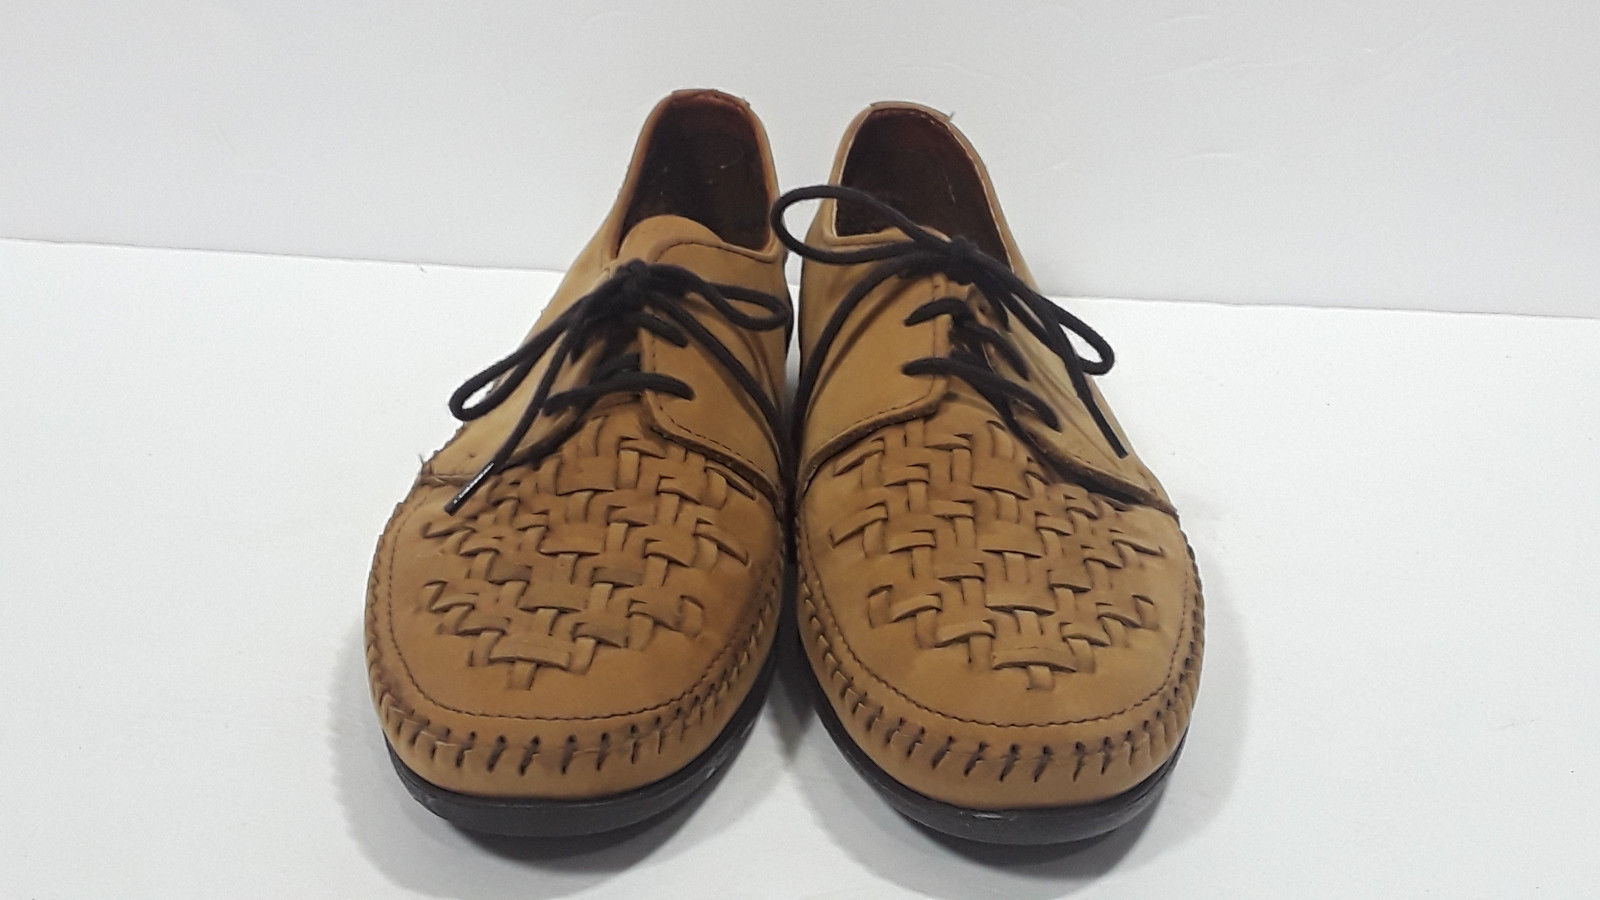 Vtg DEXTER Taupe Woven Oxfords in Box CASEY 9W Shoes Woven Lace Up Moccasins Tan